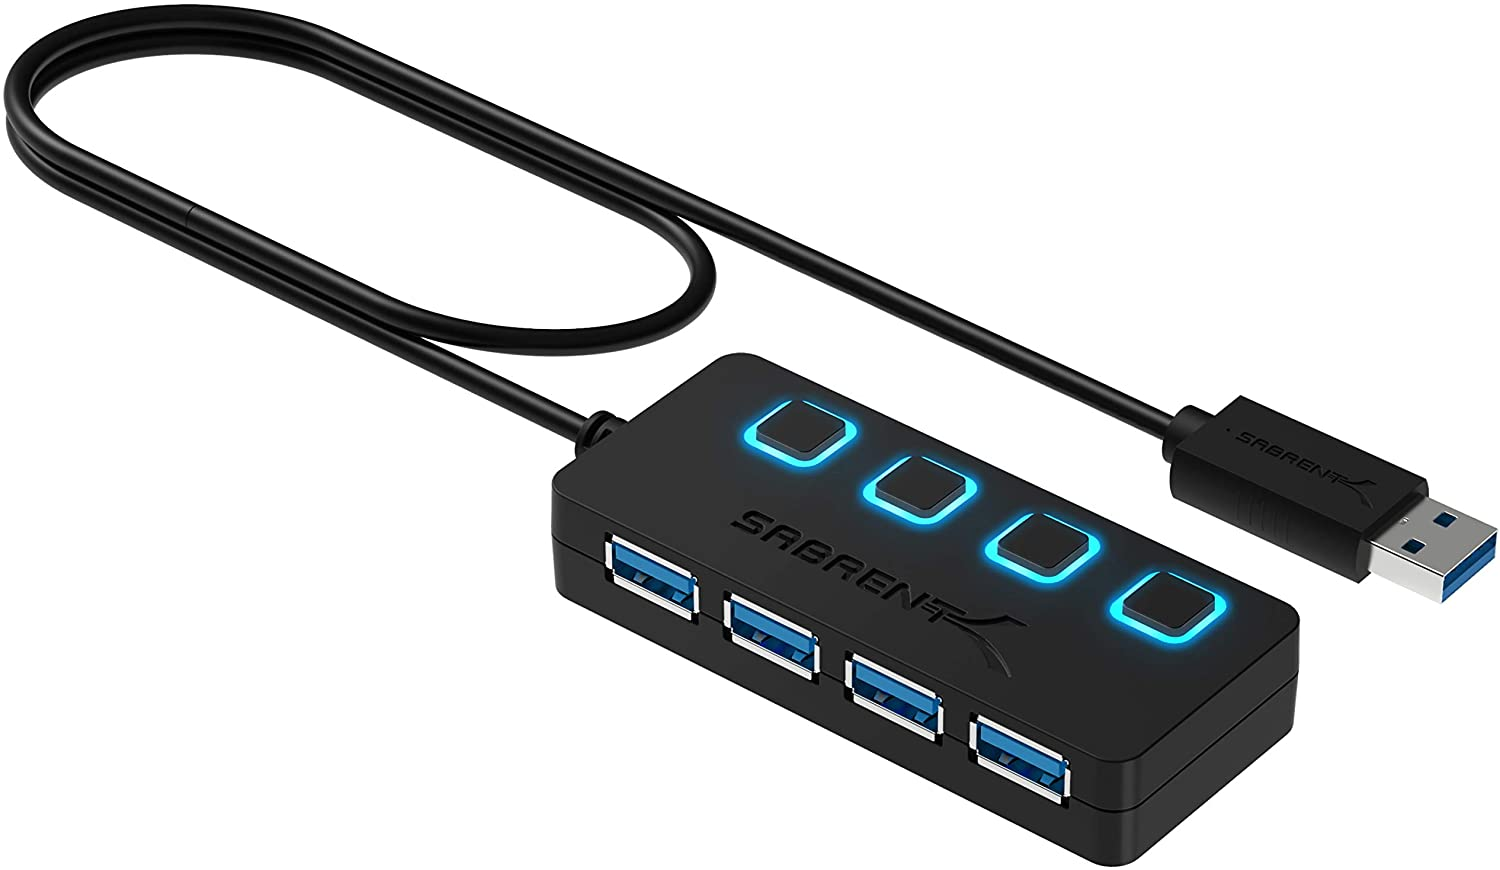 Save 40% + extra 10% on Sabrent 4-Port Hub with LED Power Switches